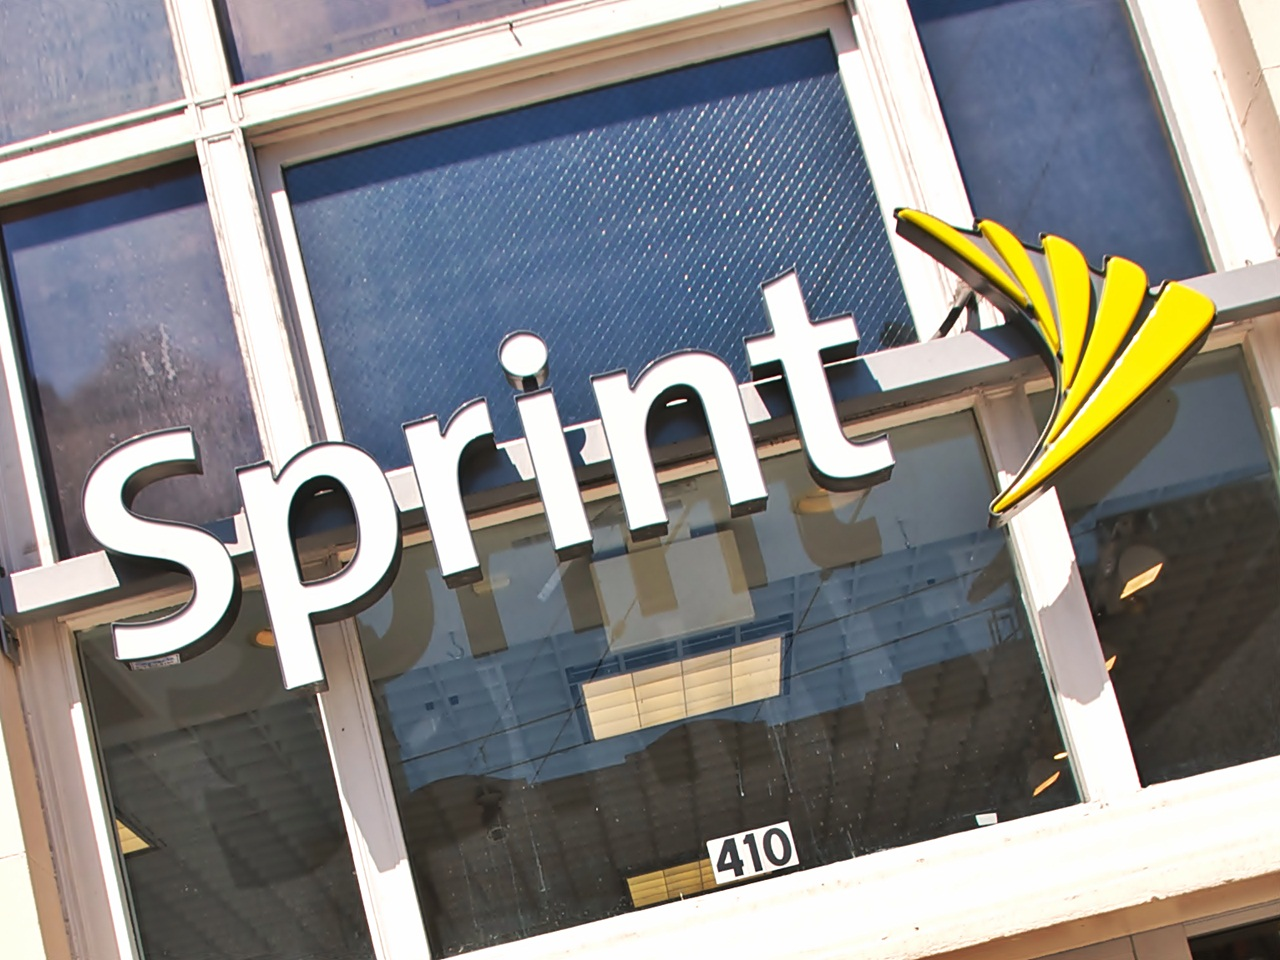 New Sprint, Sprint, SoftBank, Masayoshi Son, Dan Hesse, acquisition, buy, deal, 